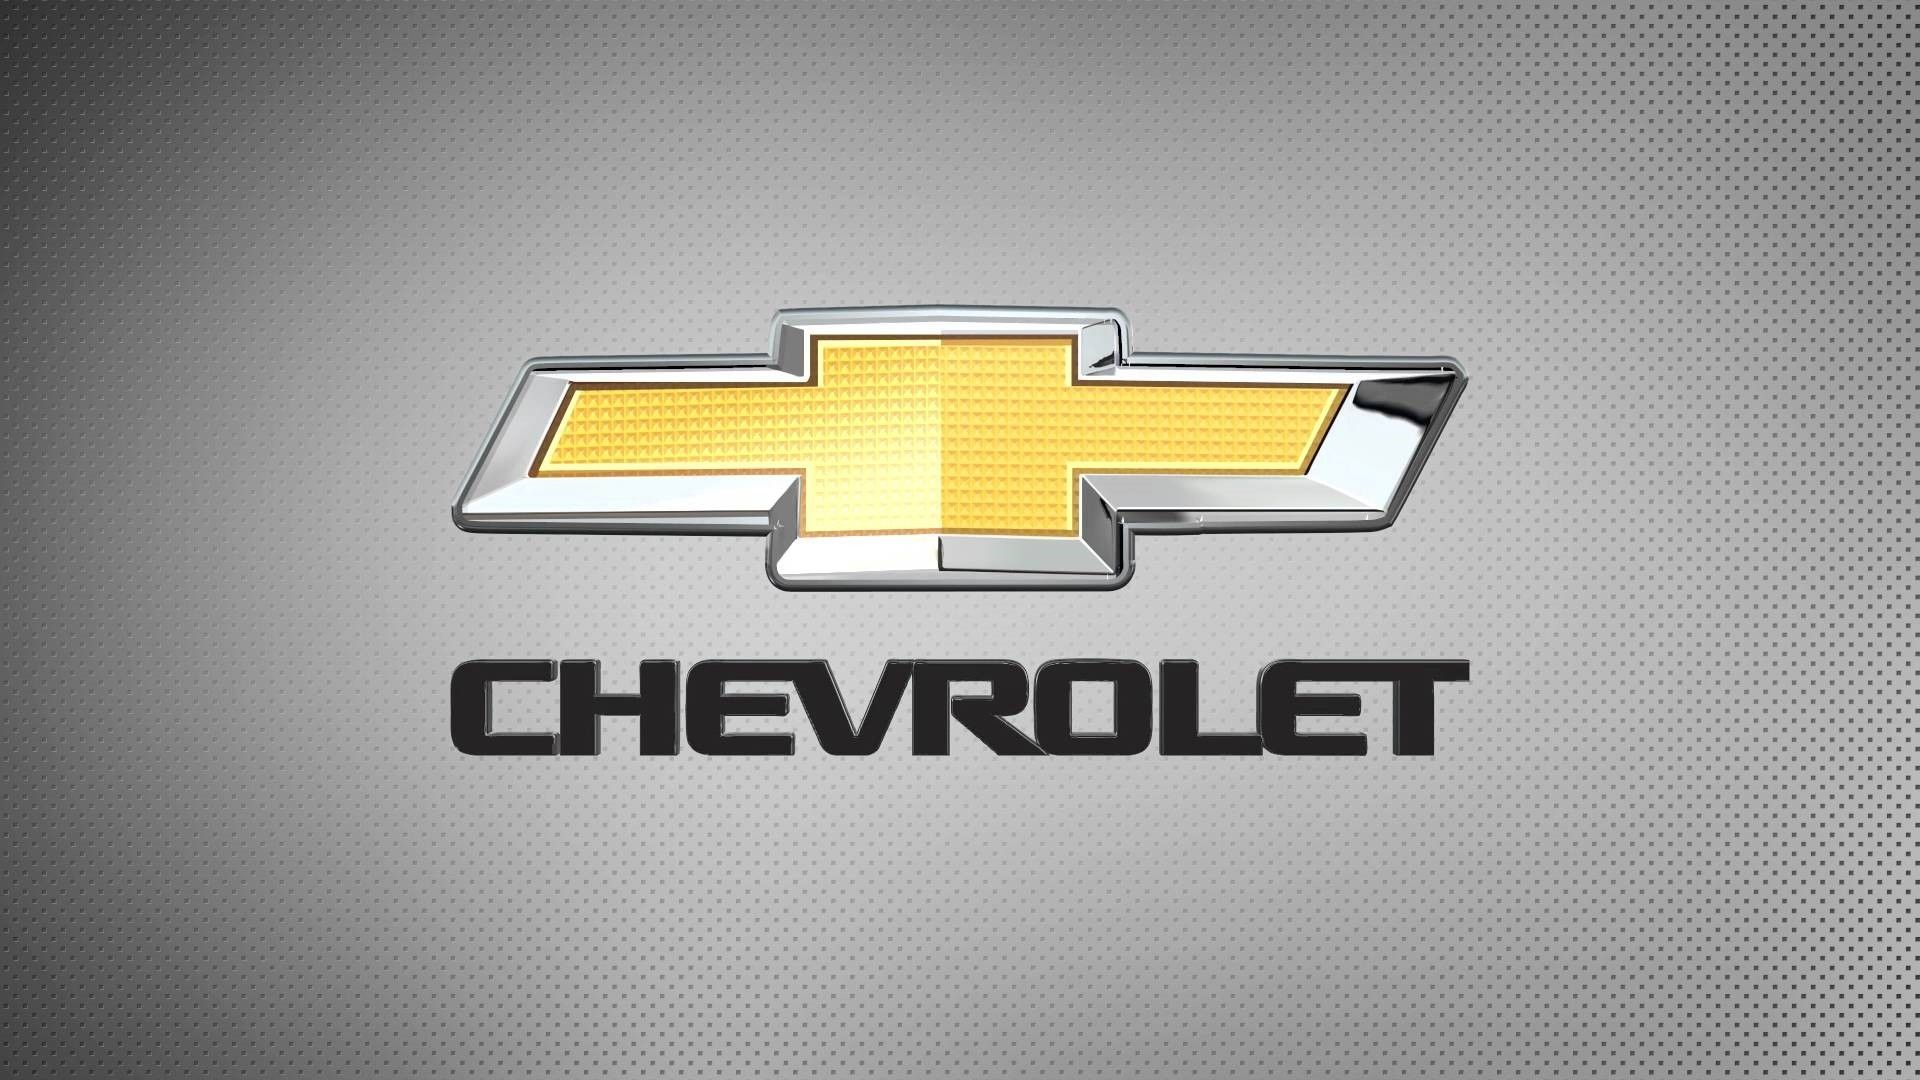 Chevrolet Logo Wallpapers Top Free Chevrolet Logo Backgrounds